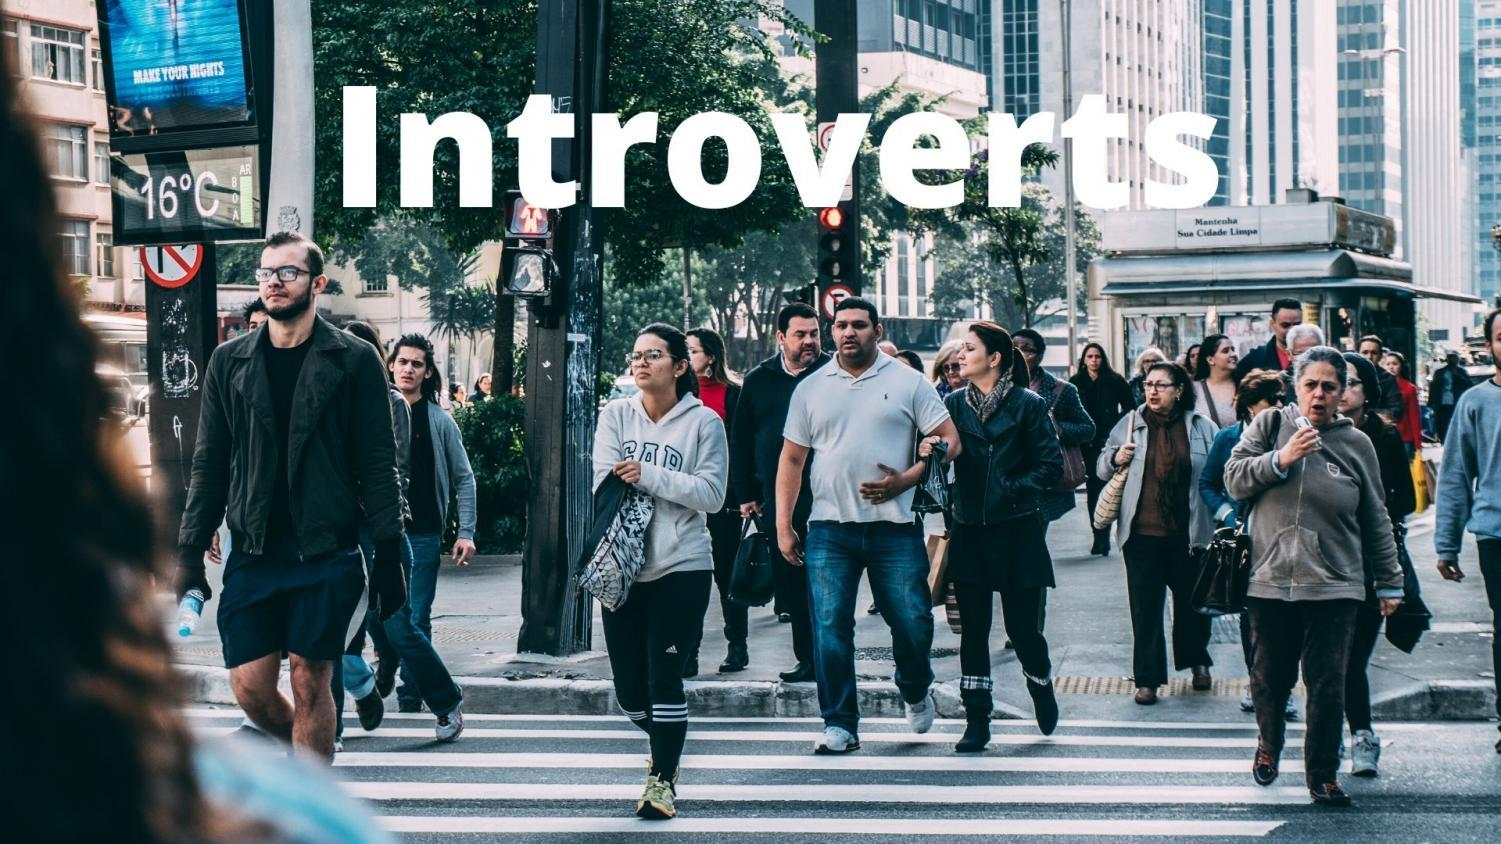 unlike many extroverts may believe, introverts are not easy to spot in a crowd.